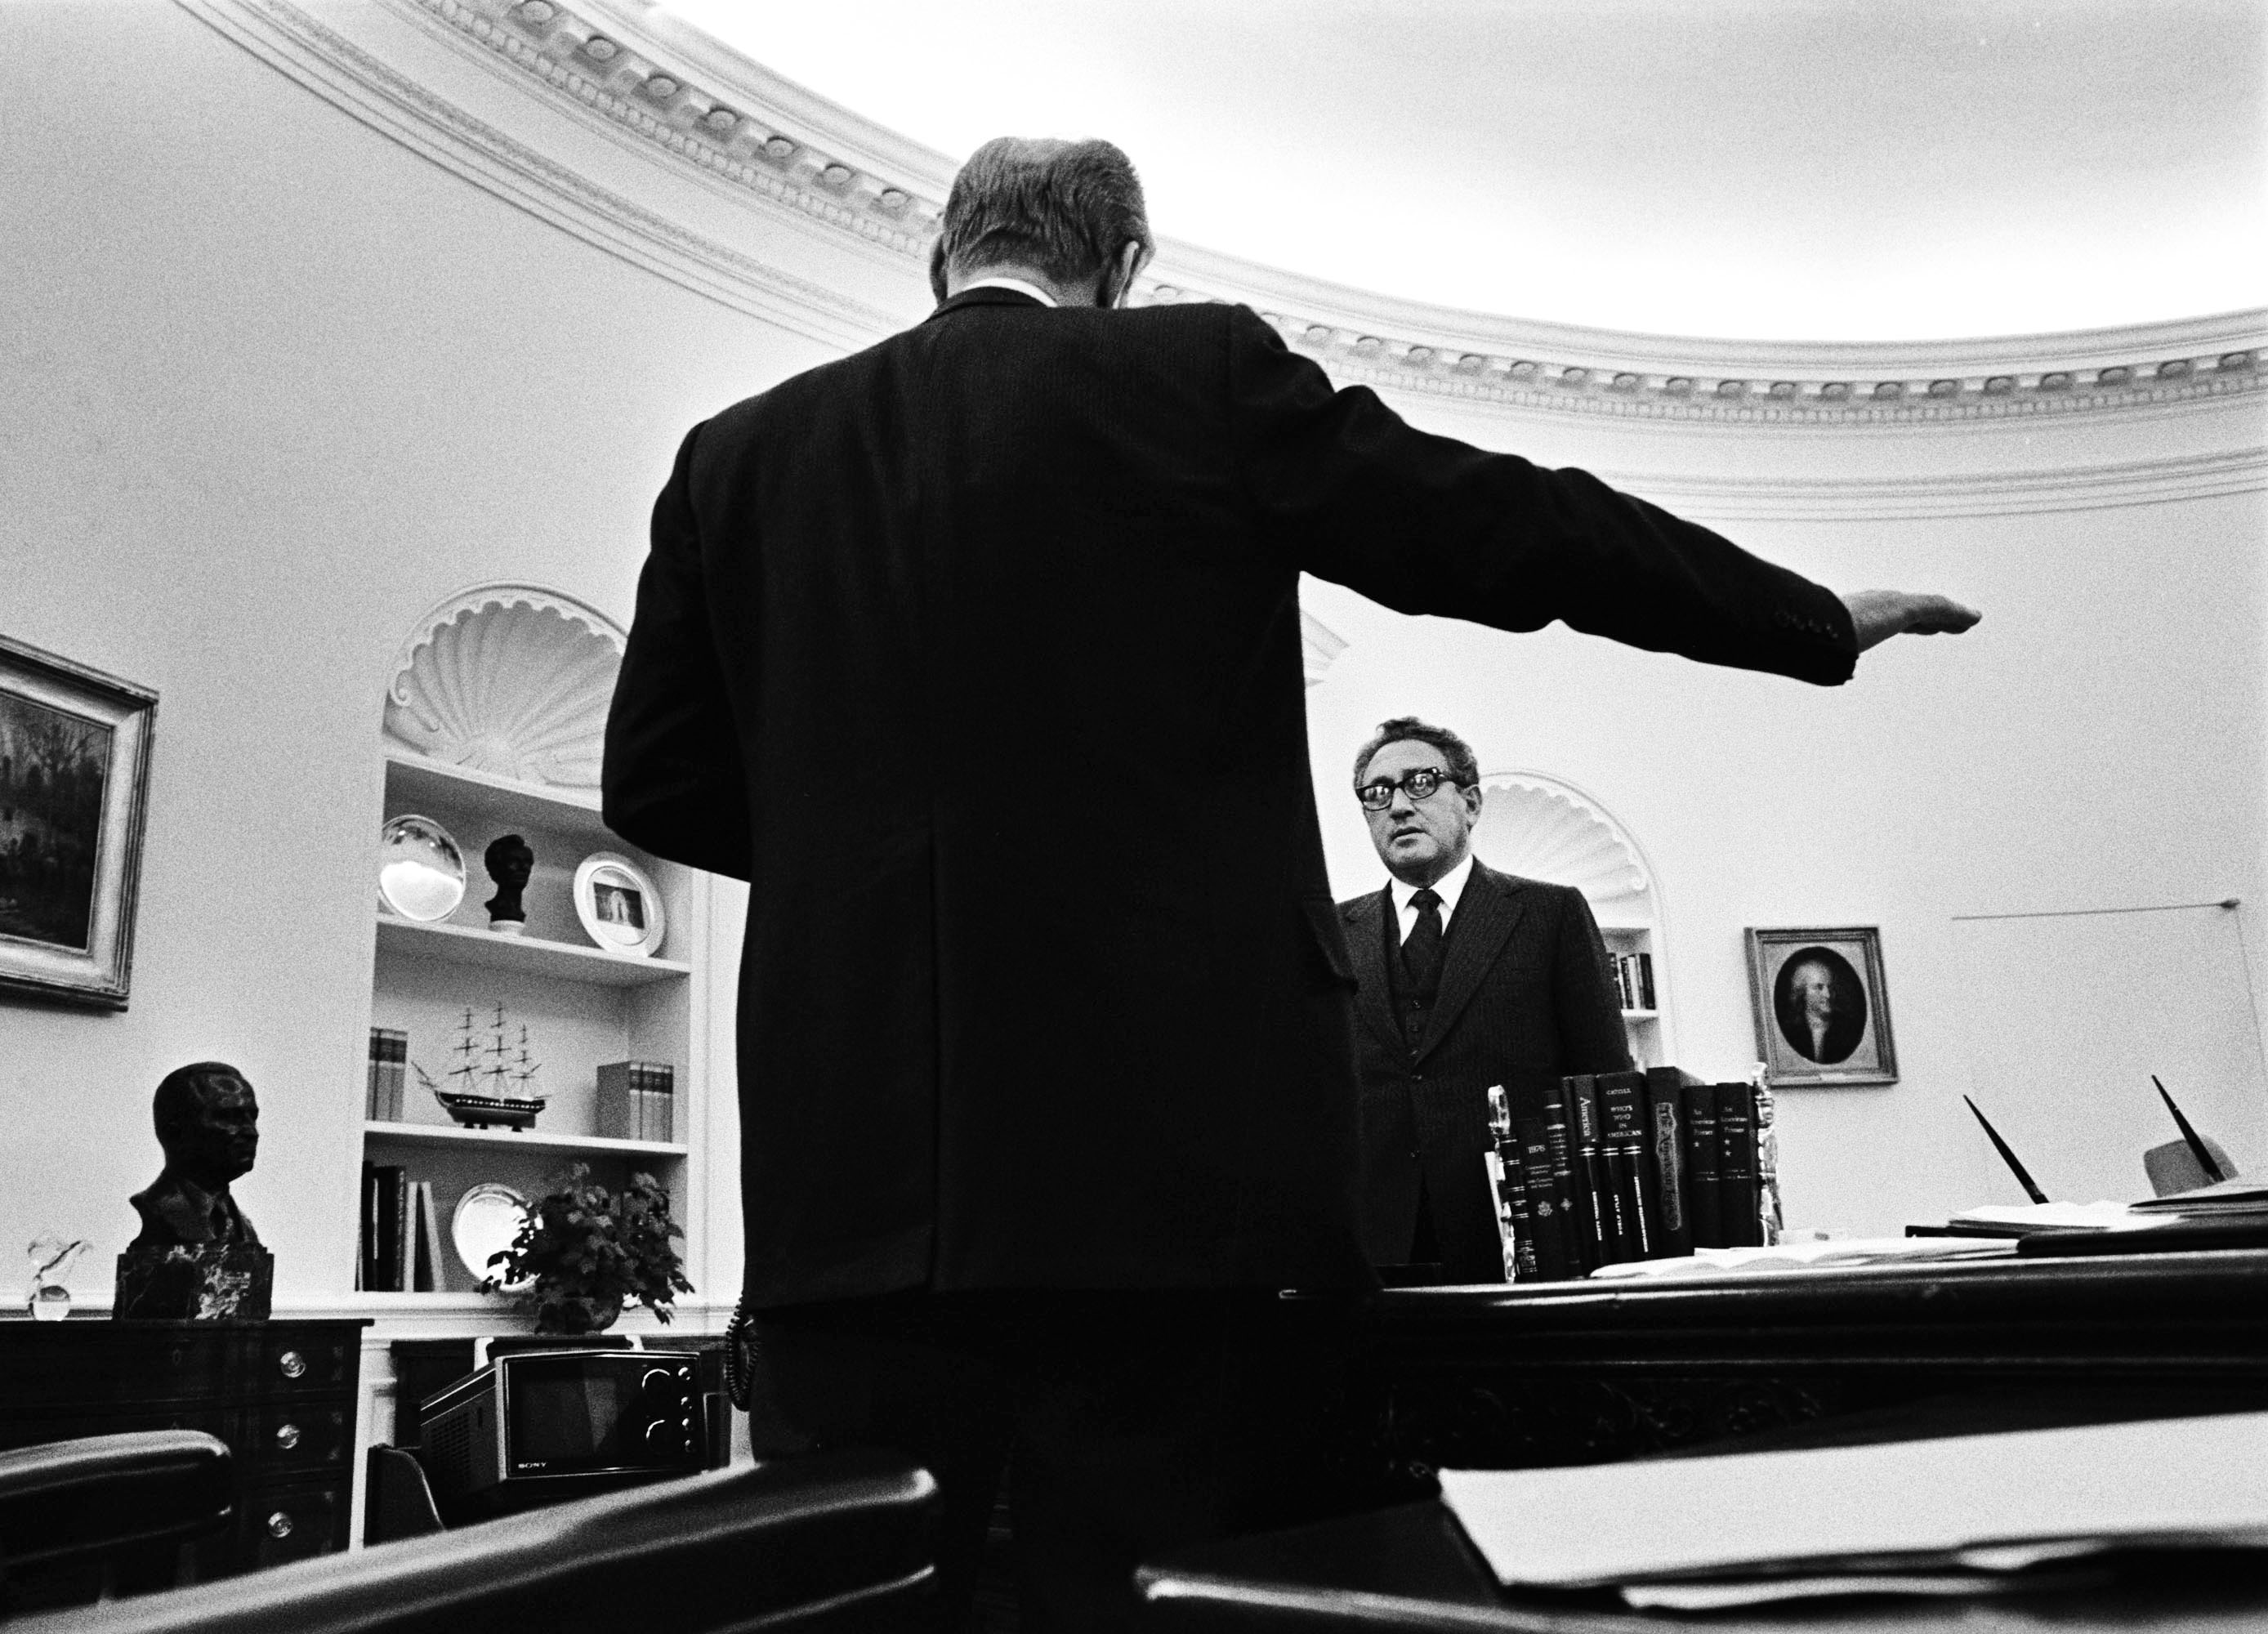 As White House photographer I was able to be in situations off limits to other photographers, and was able to document many critical historical moments,  says David Hume Kennerly, who photographed President Ford and Secretary of State Henry Kissinger discussing the ongoing negotiations on the Strategic Arms Limitation Treaty (SALT) being conducted with the Soviets on March 24, 1976.